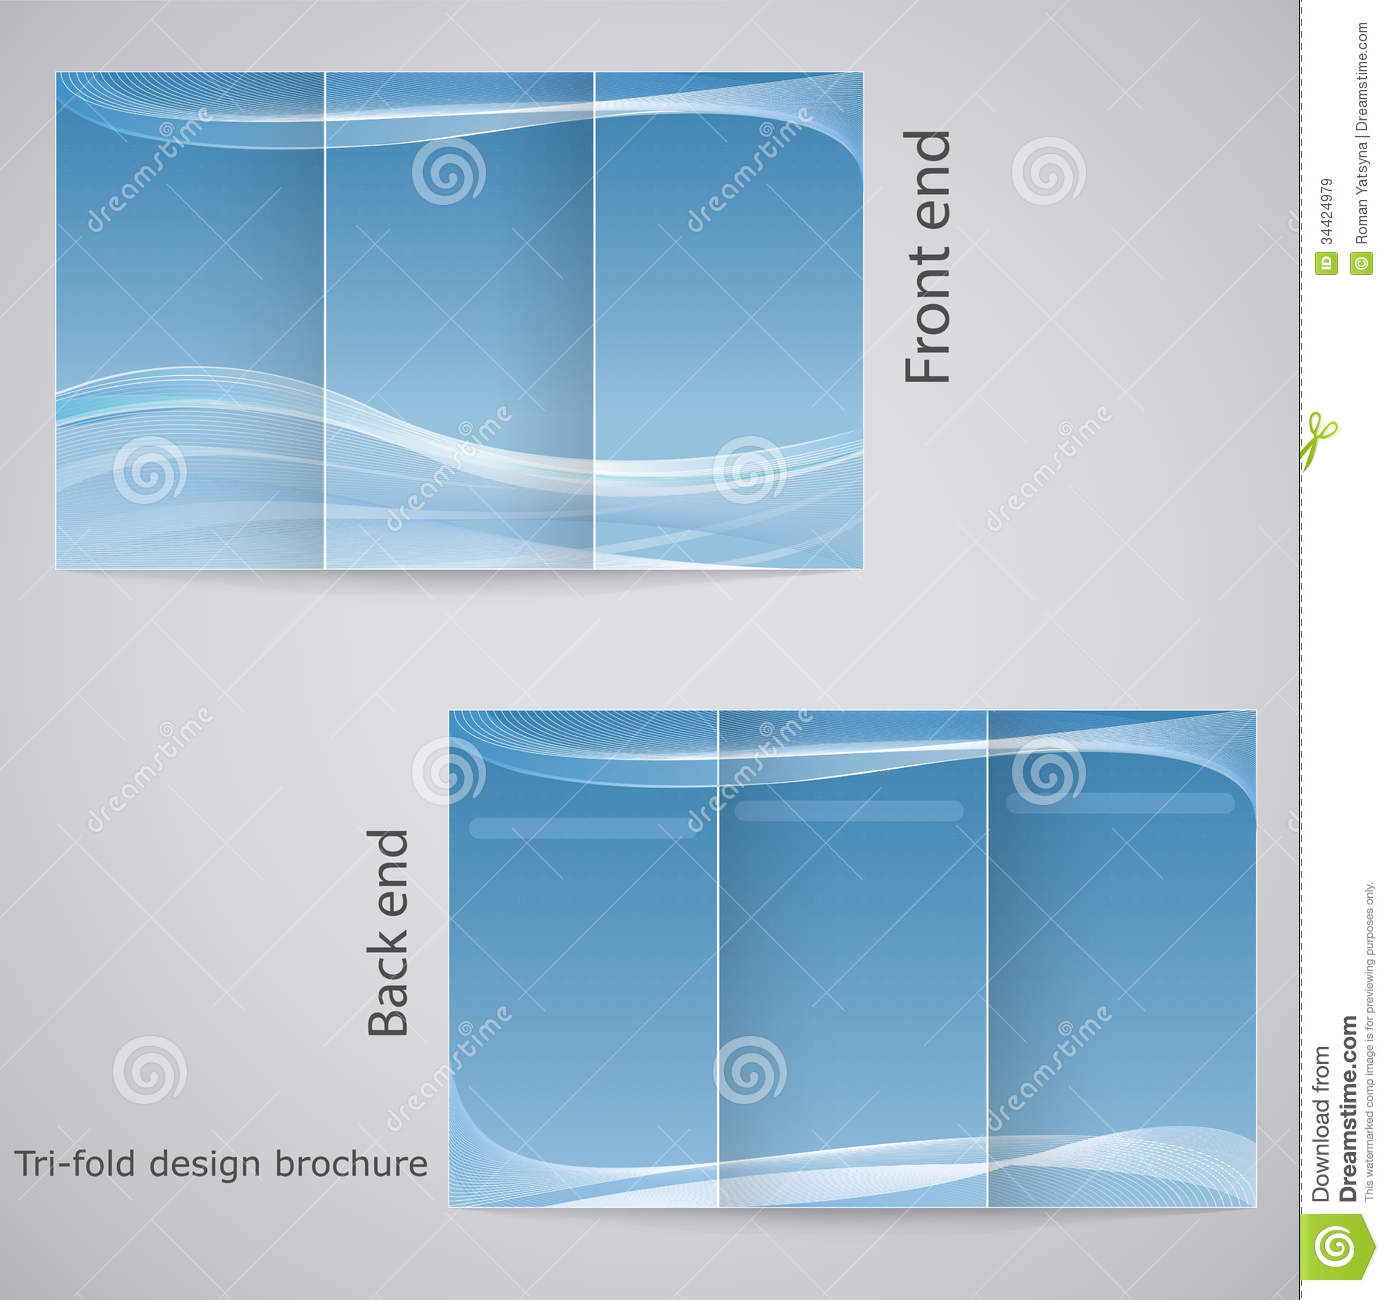 17 tri fold brochure design templates images tri fold for Photoshop tri fold brochure template free